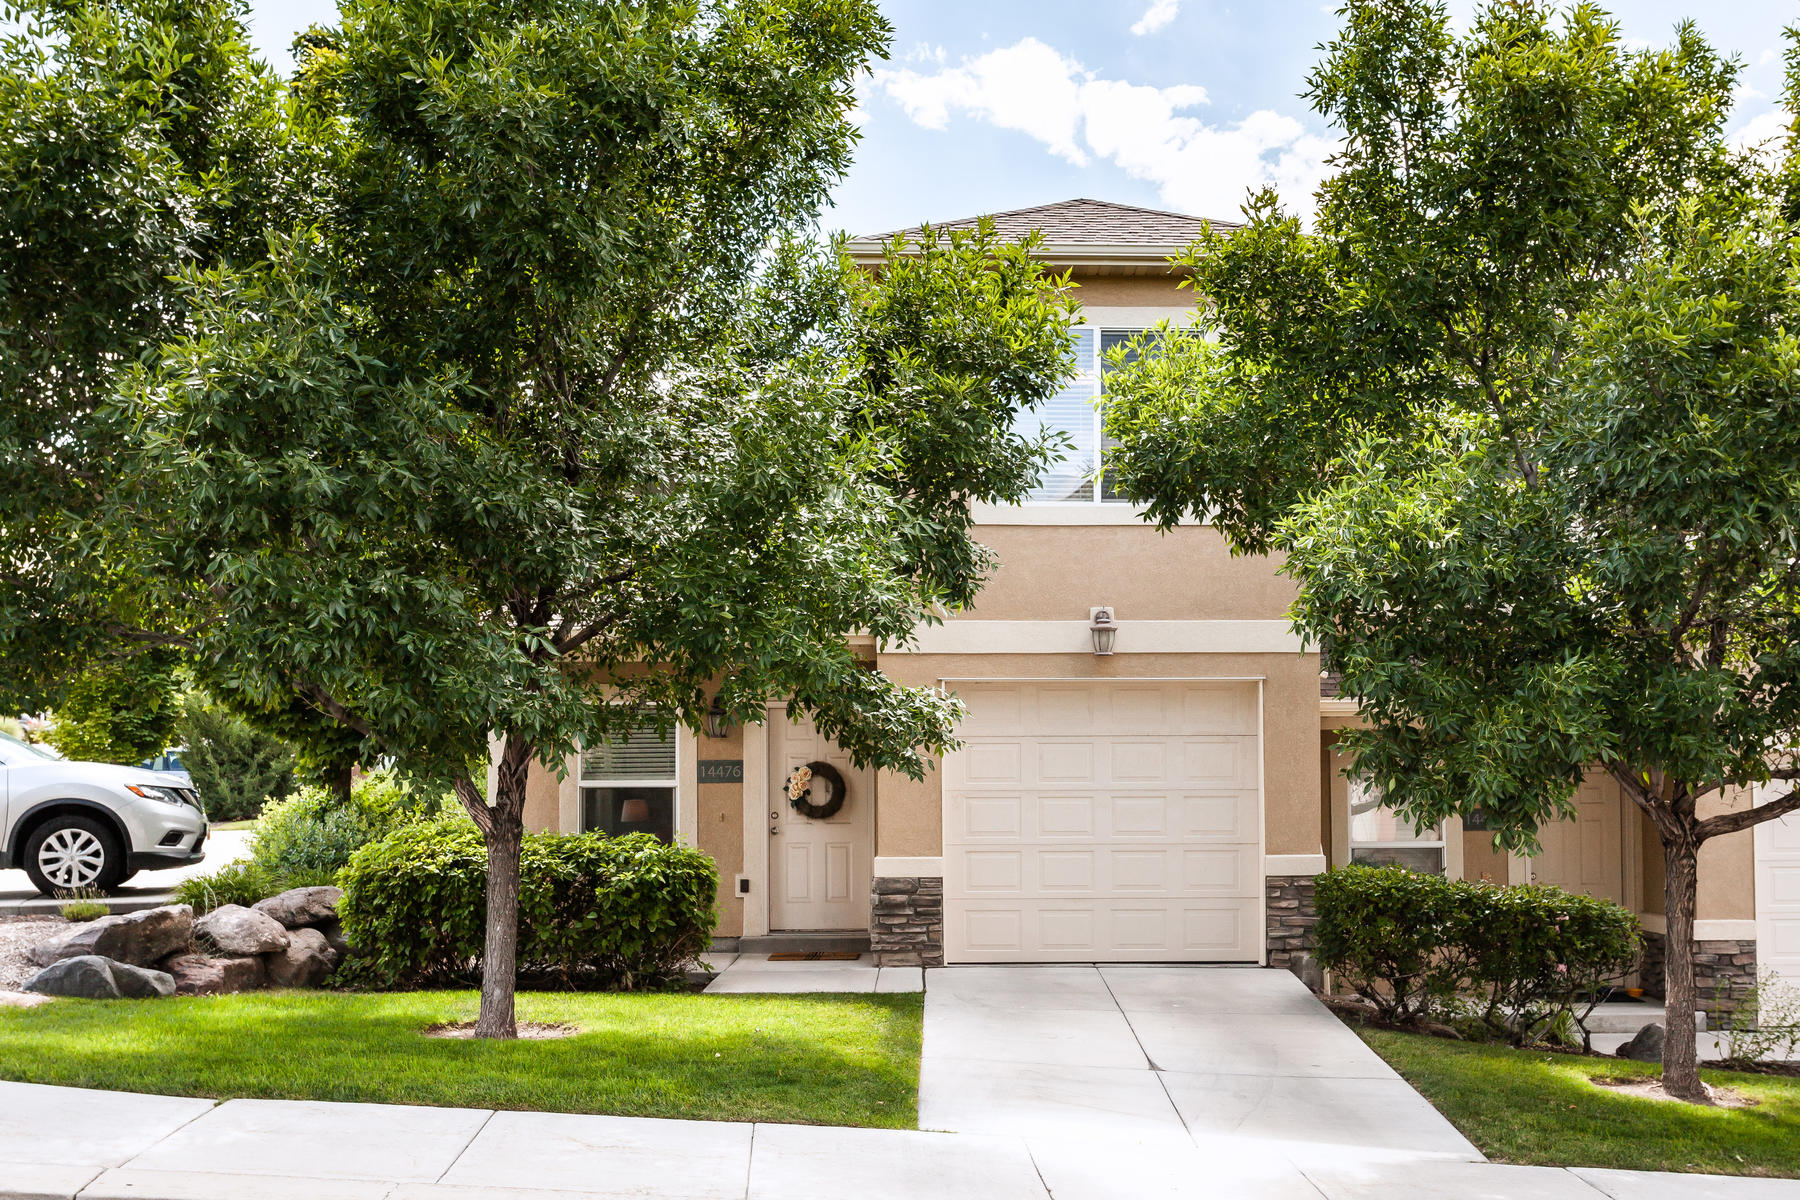 townhouses for Active at Completely Move-In Ready 14476 S Boulder Crest Dr Herriman, Utah 84096 United States